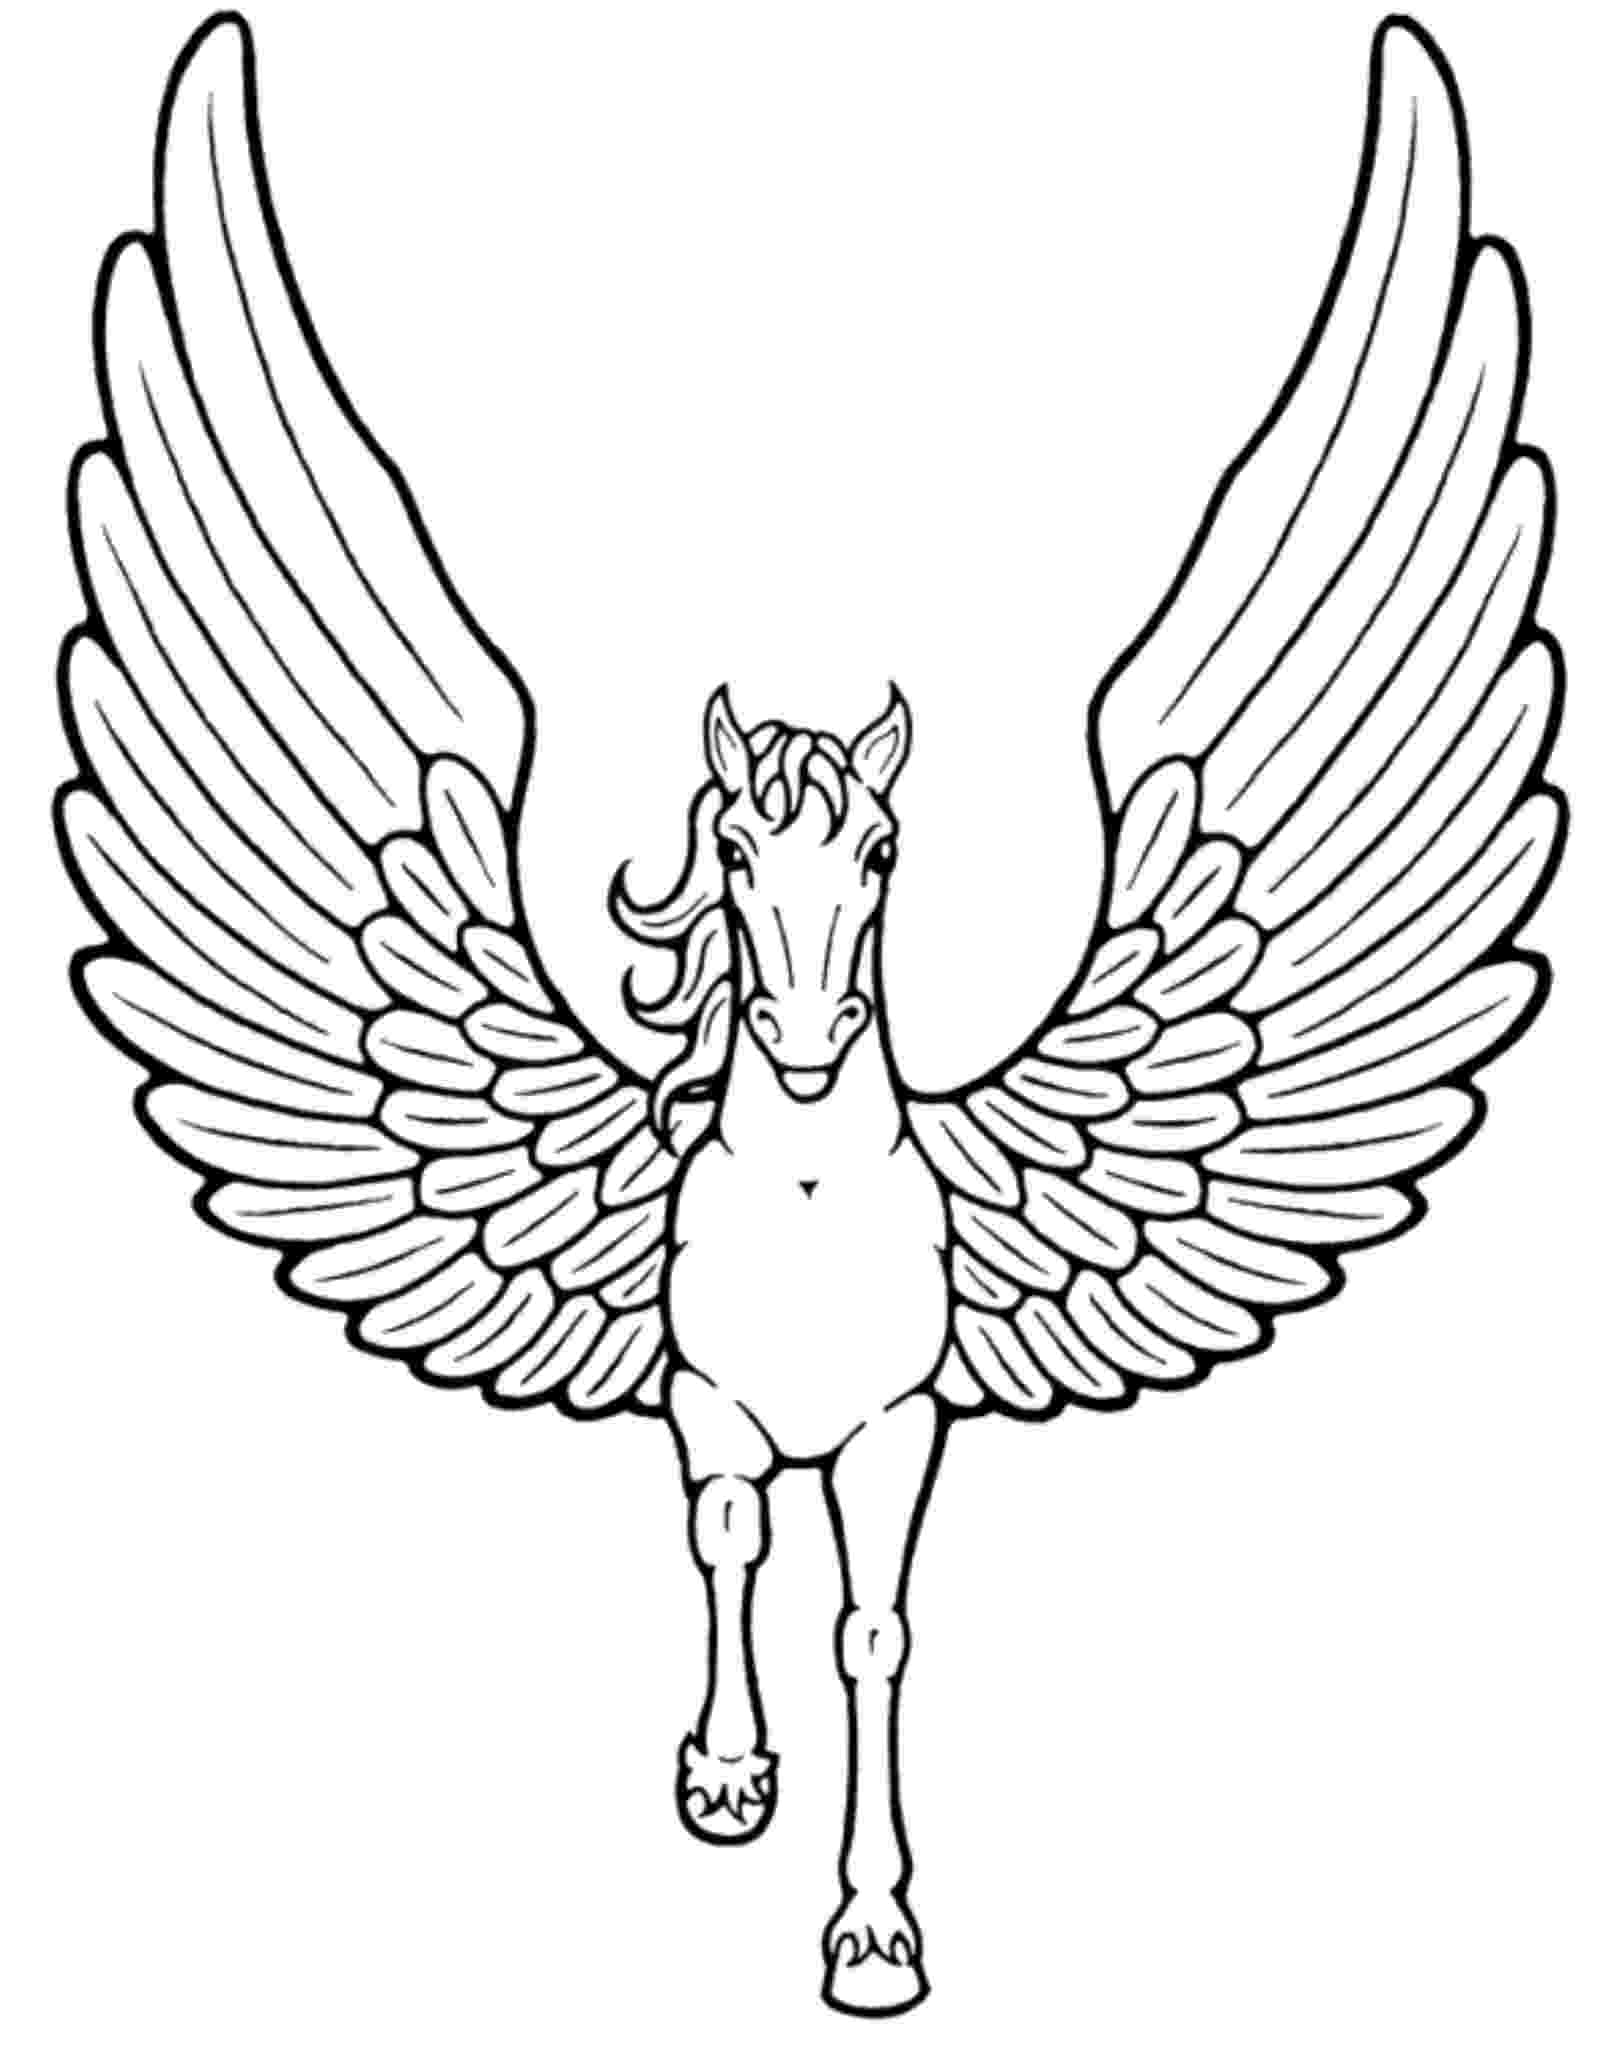 unicorns coloring pages unicorn coloring pages to download and print for free unicorns coloring pages 1 1